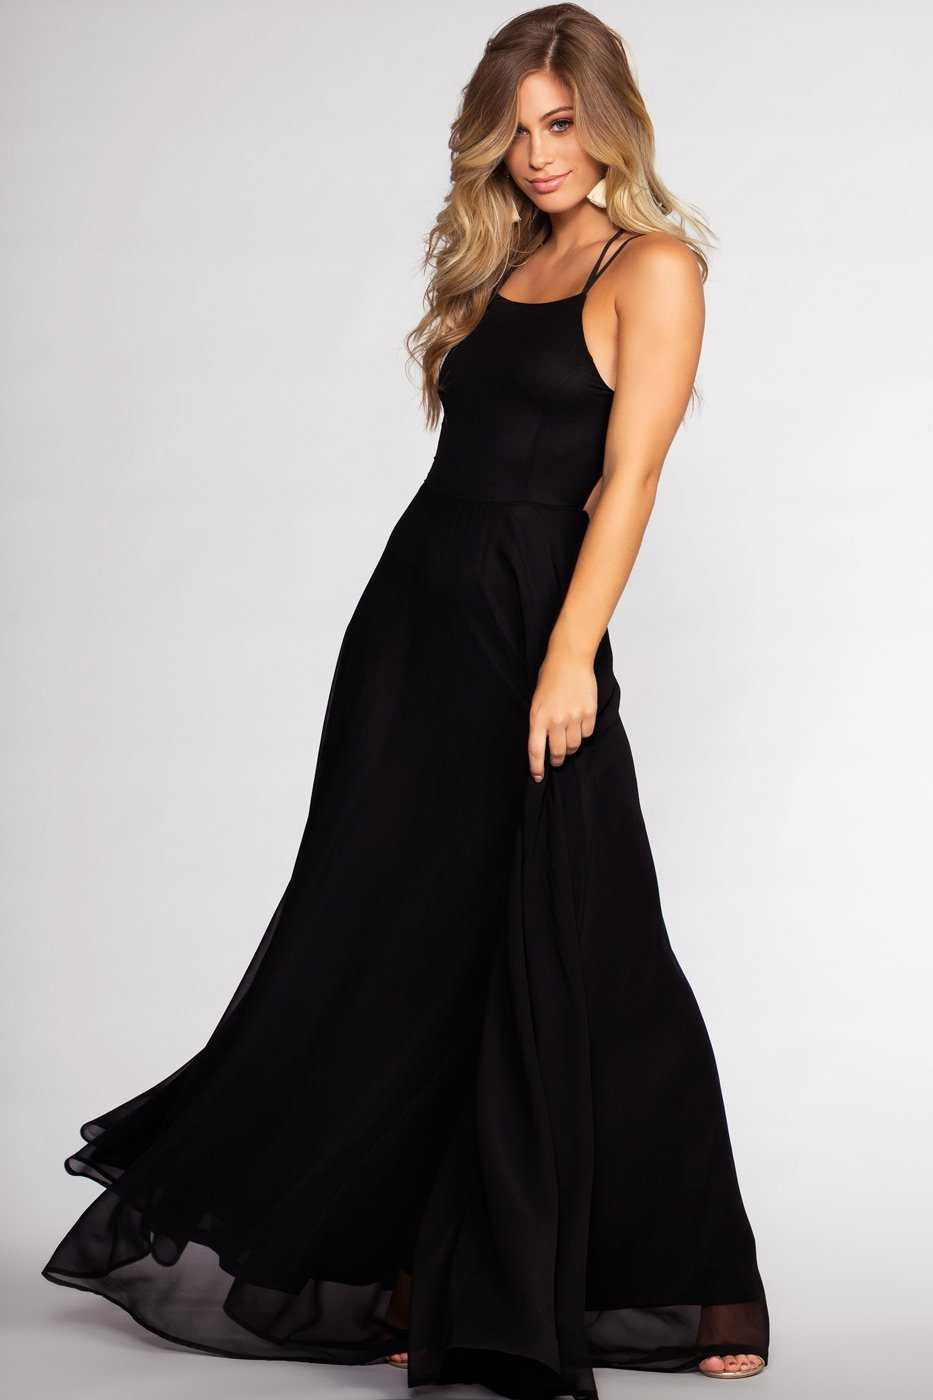 Dresses - Fairytale Ending Maxi Dress - Black